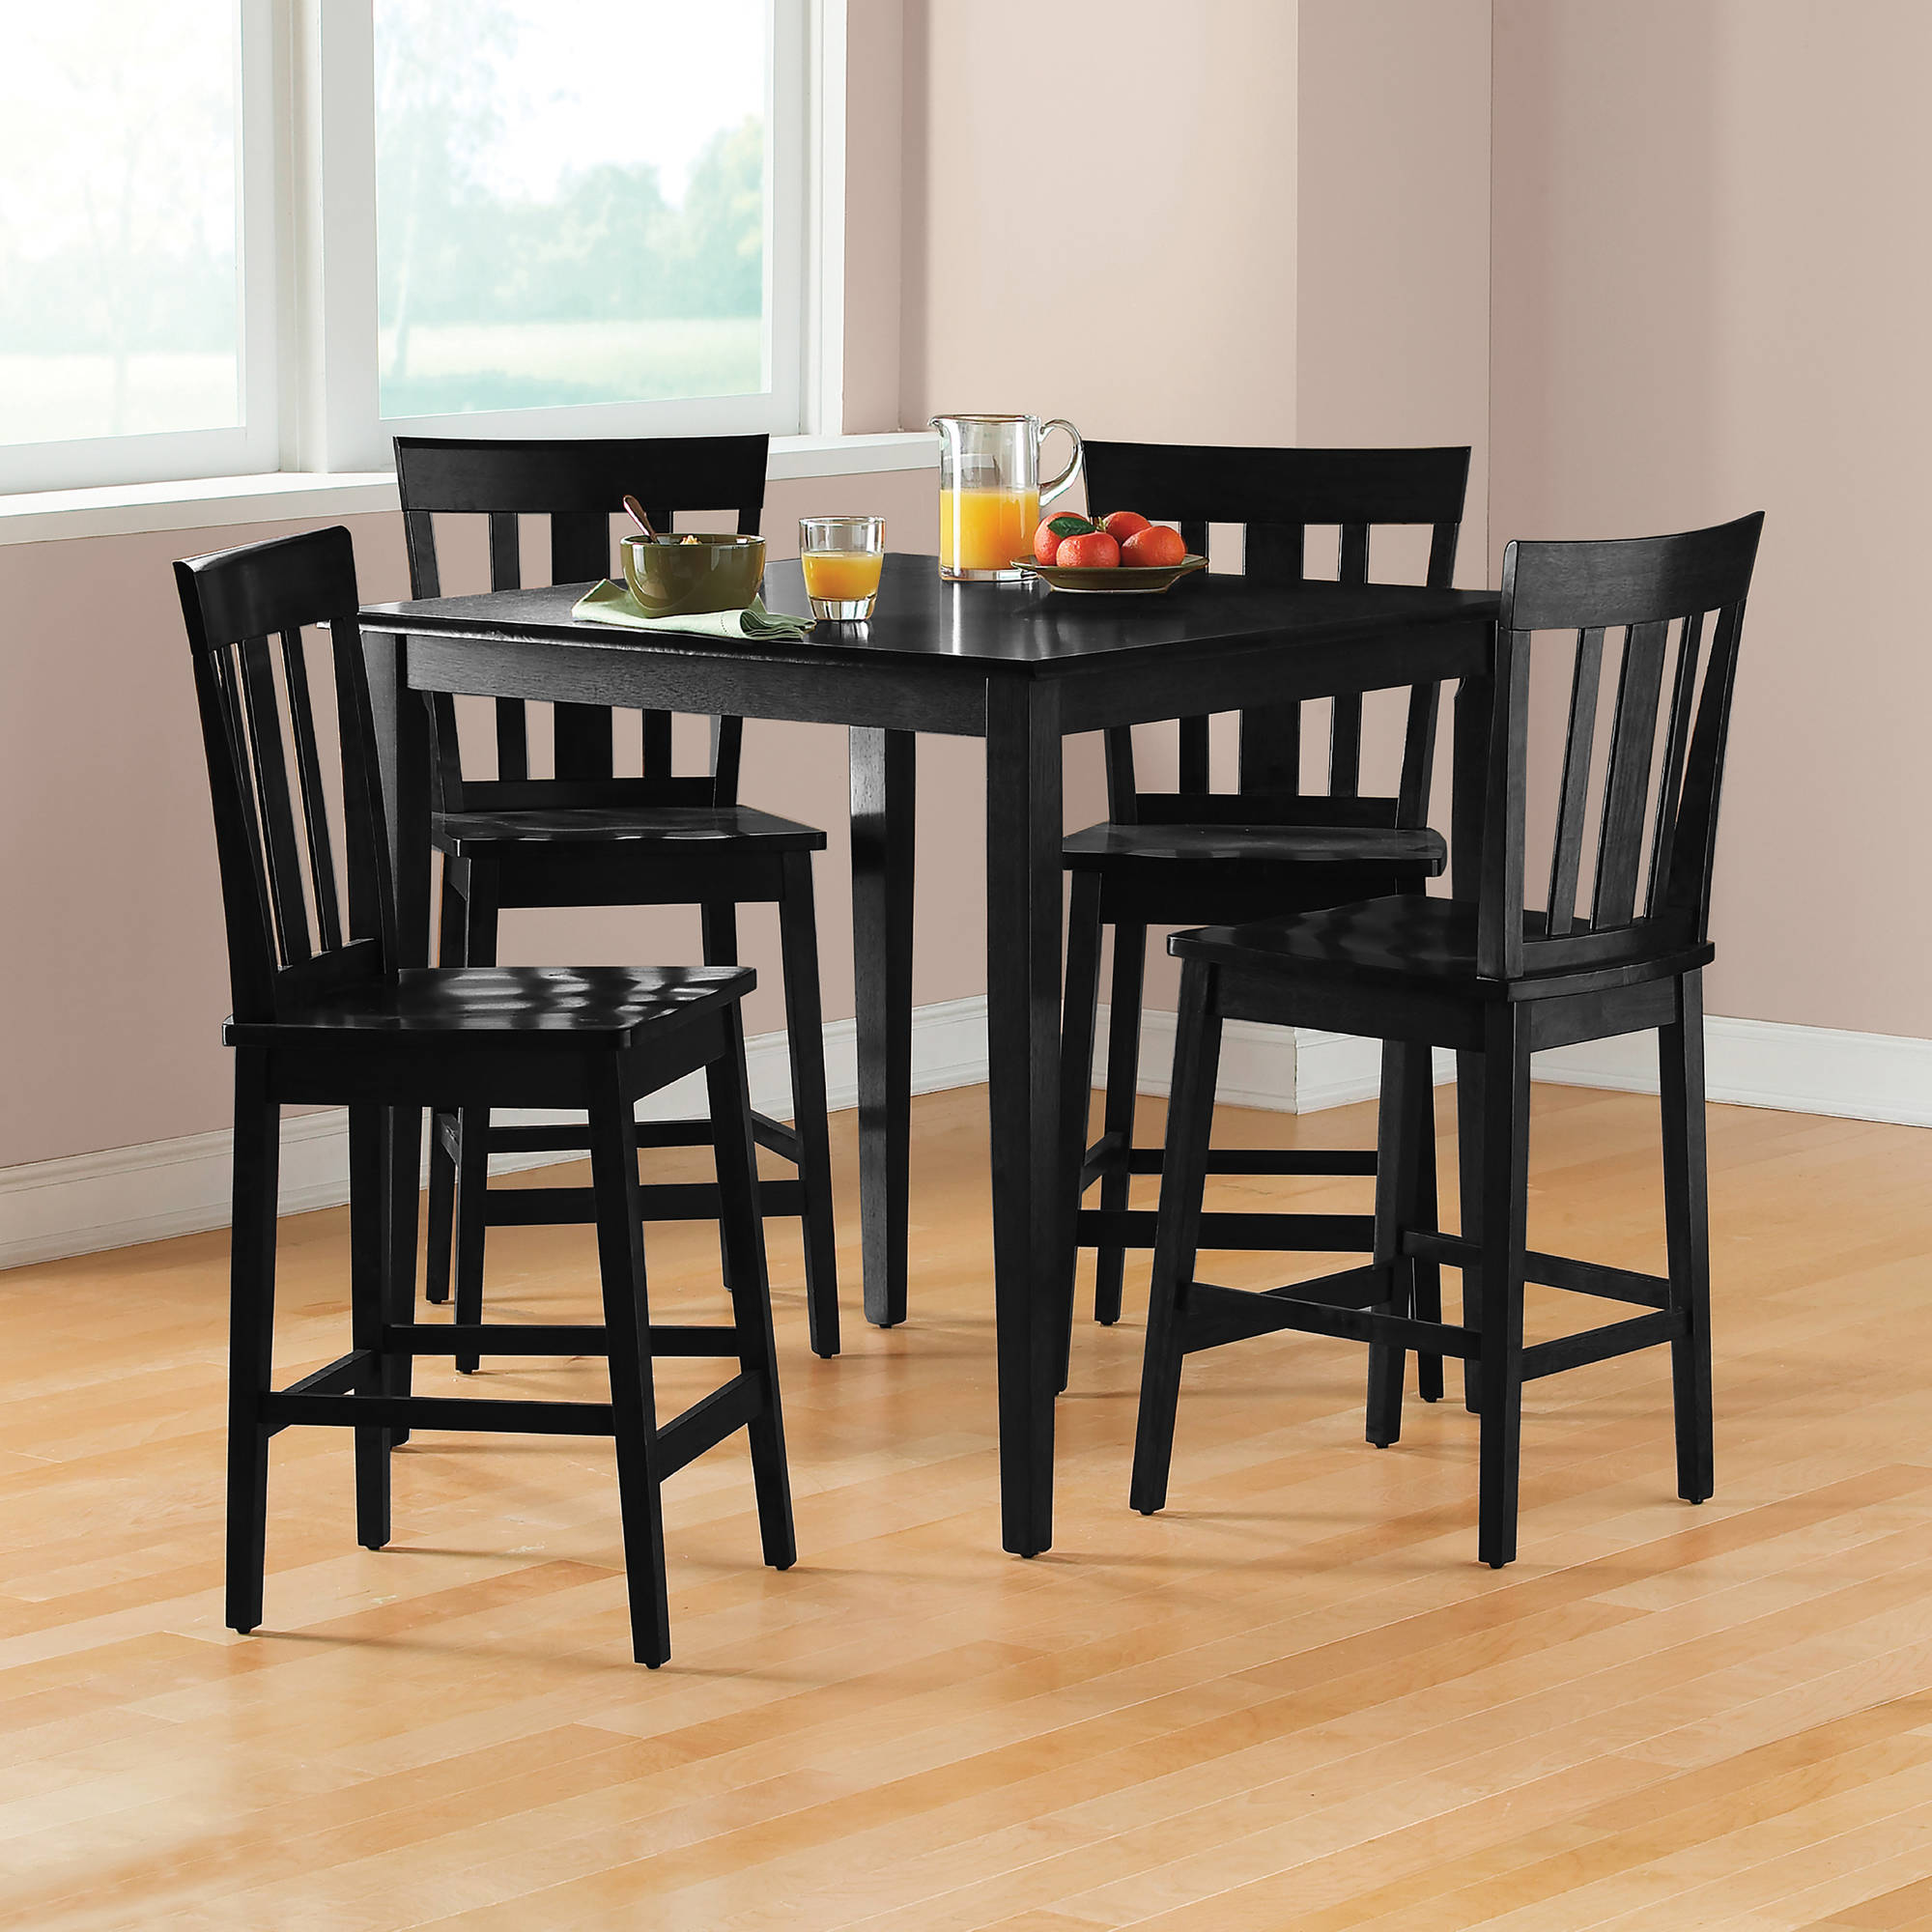 Mainstays 5 Piece Counter Height Dining Set Multiple Colors